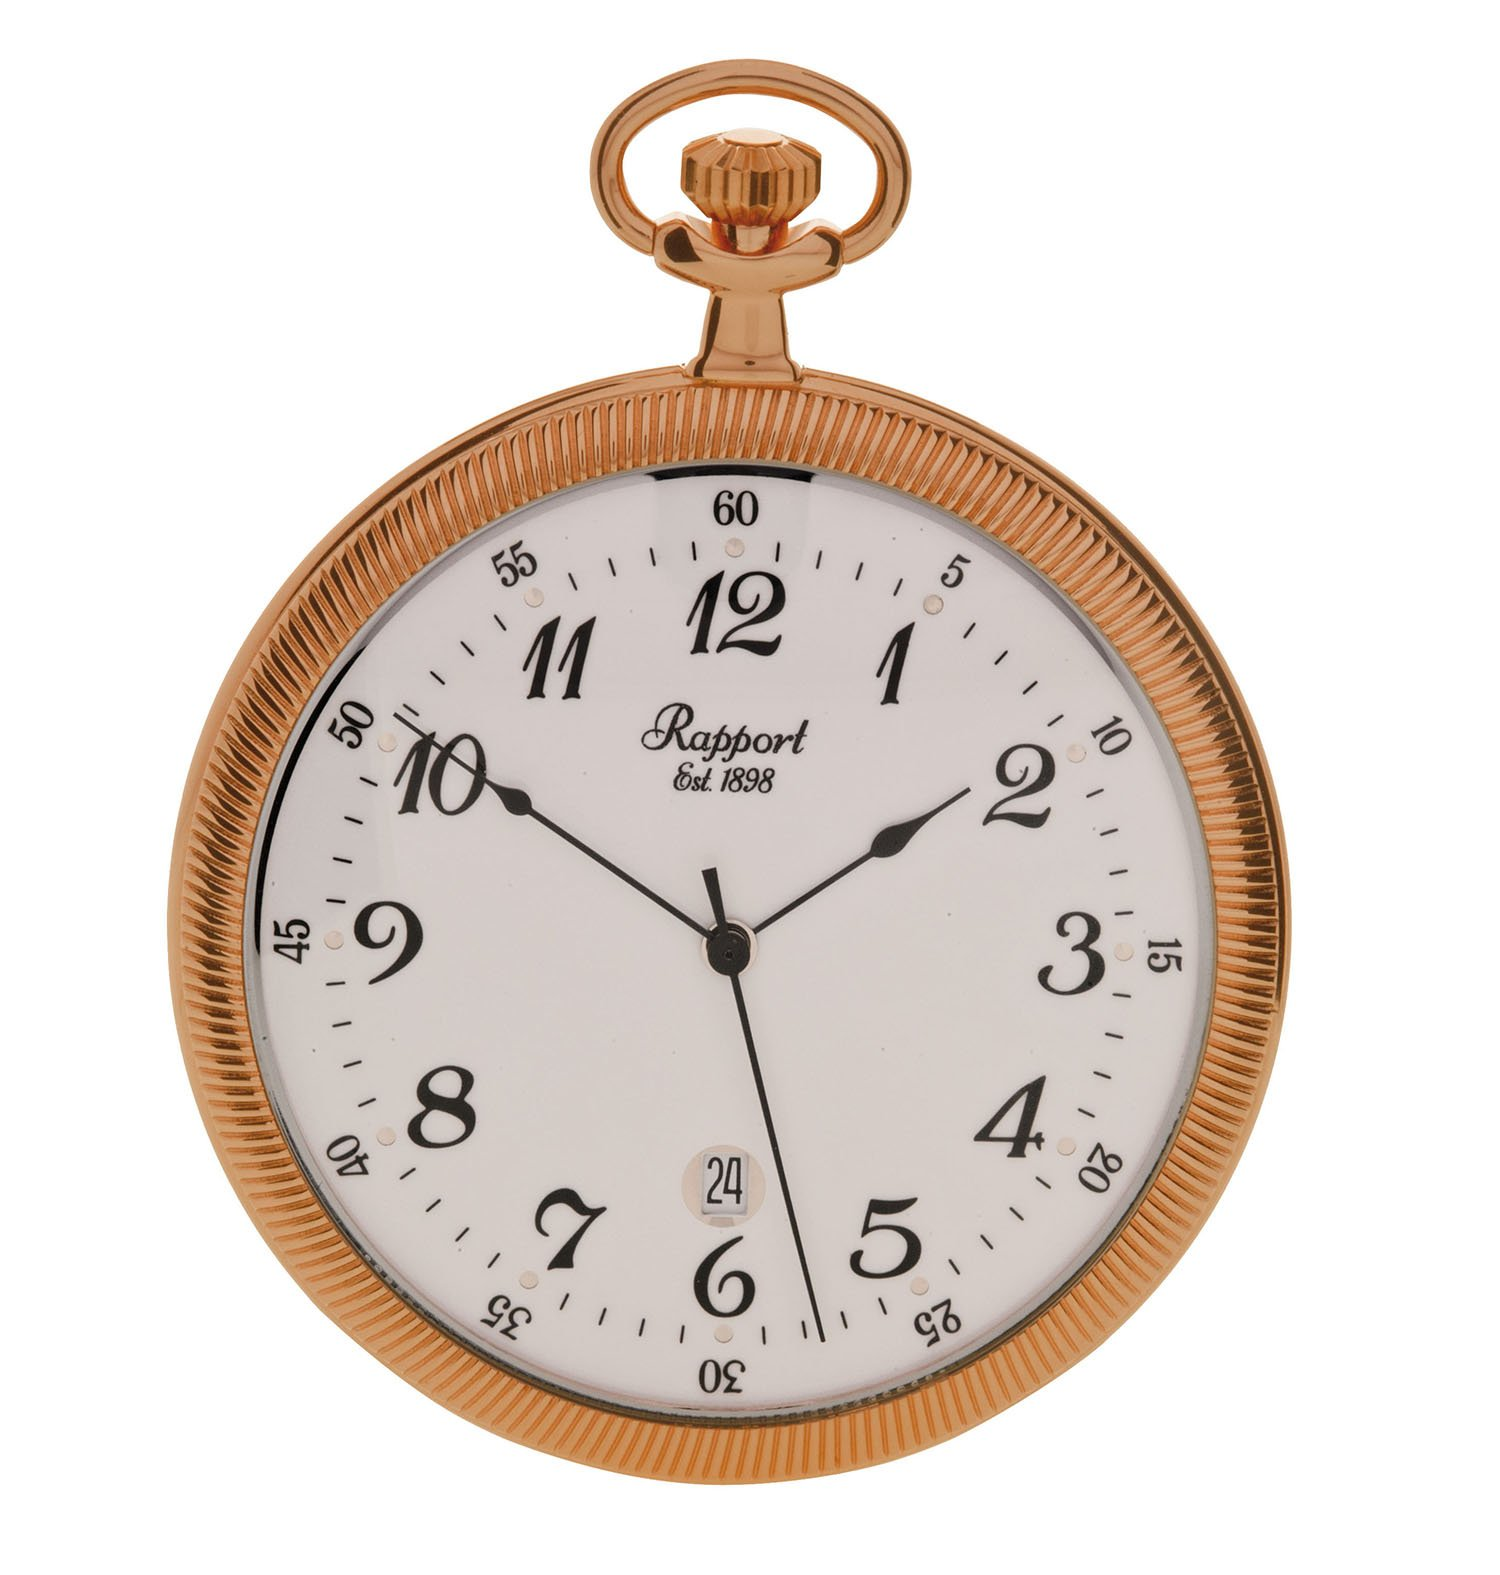 Vintage Pocket Watch with Chain by Rapport - Classic Oxford Open Face Pocket Watch with Date - Rose Gold by Rapport